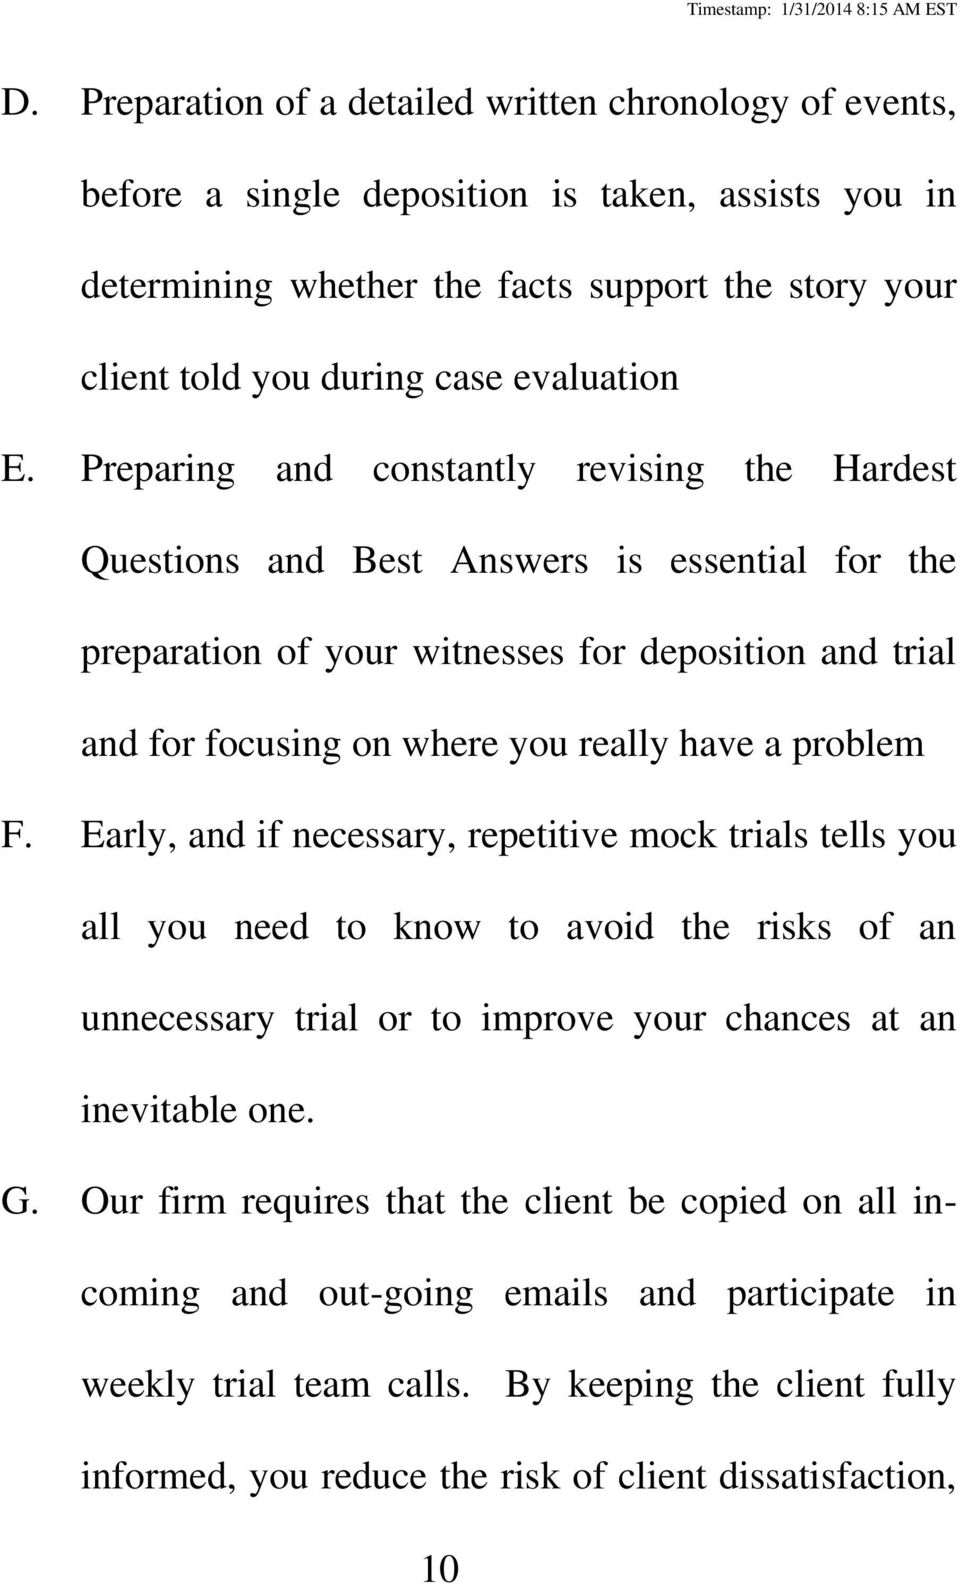 Preparing and constantly revising the Hardest Questions and Best Answers is essential for the preparation of your witnesses for deposition and trial and for focusing on where you really have a